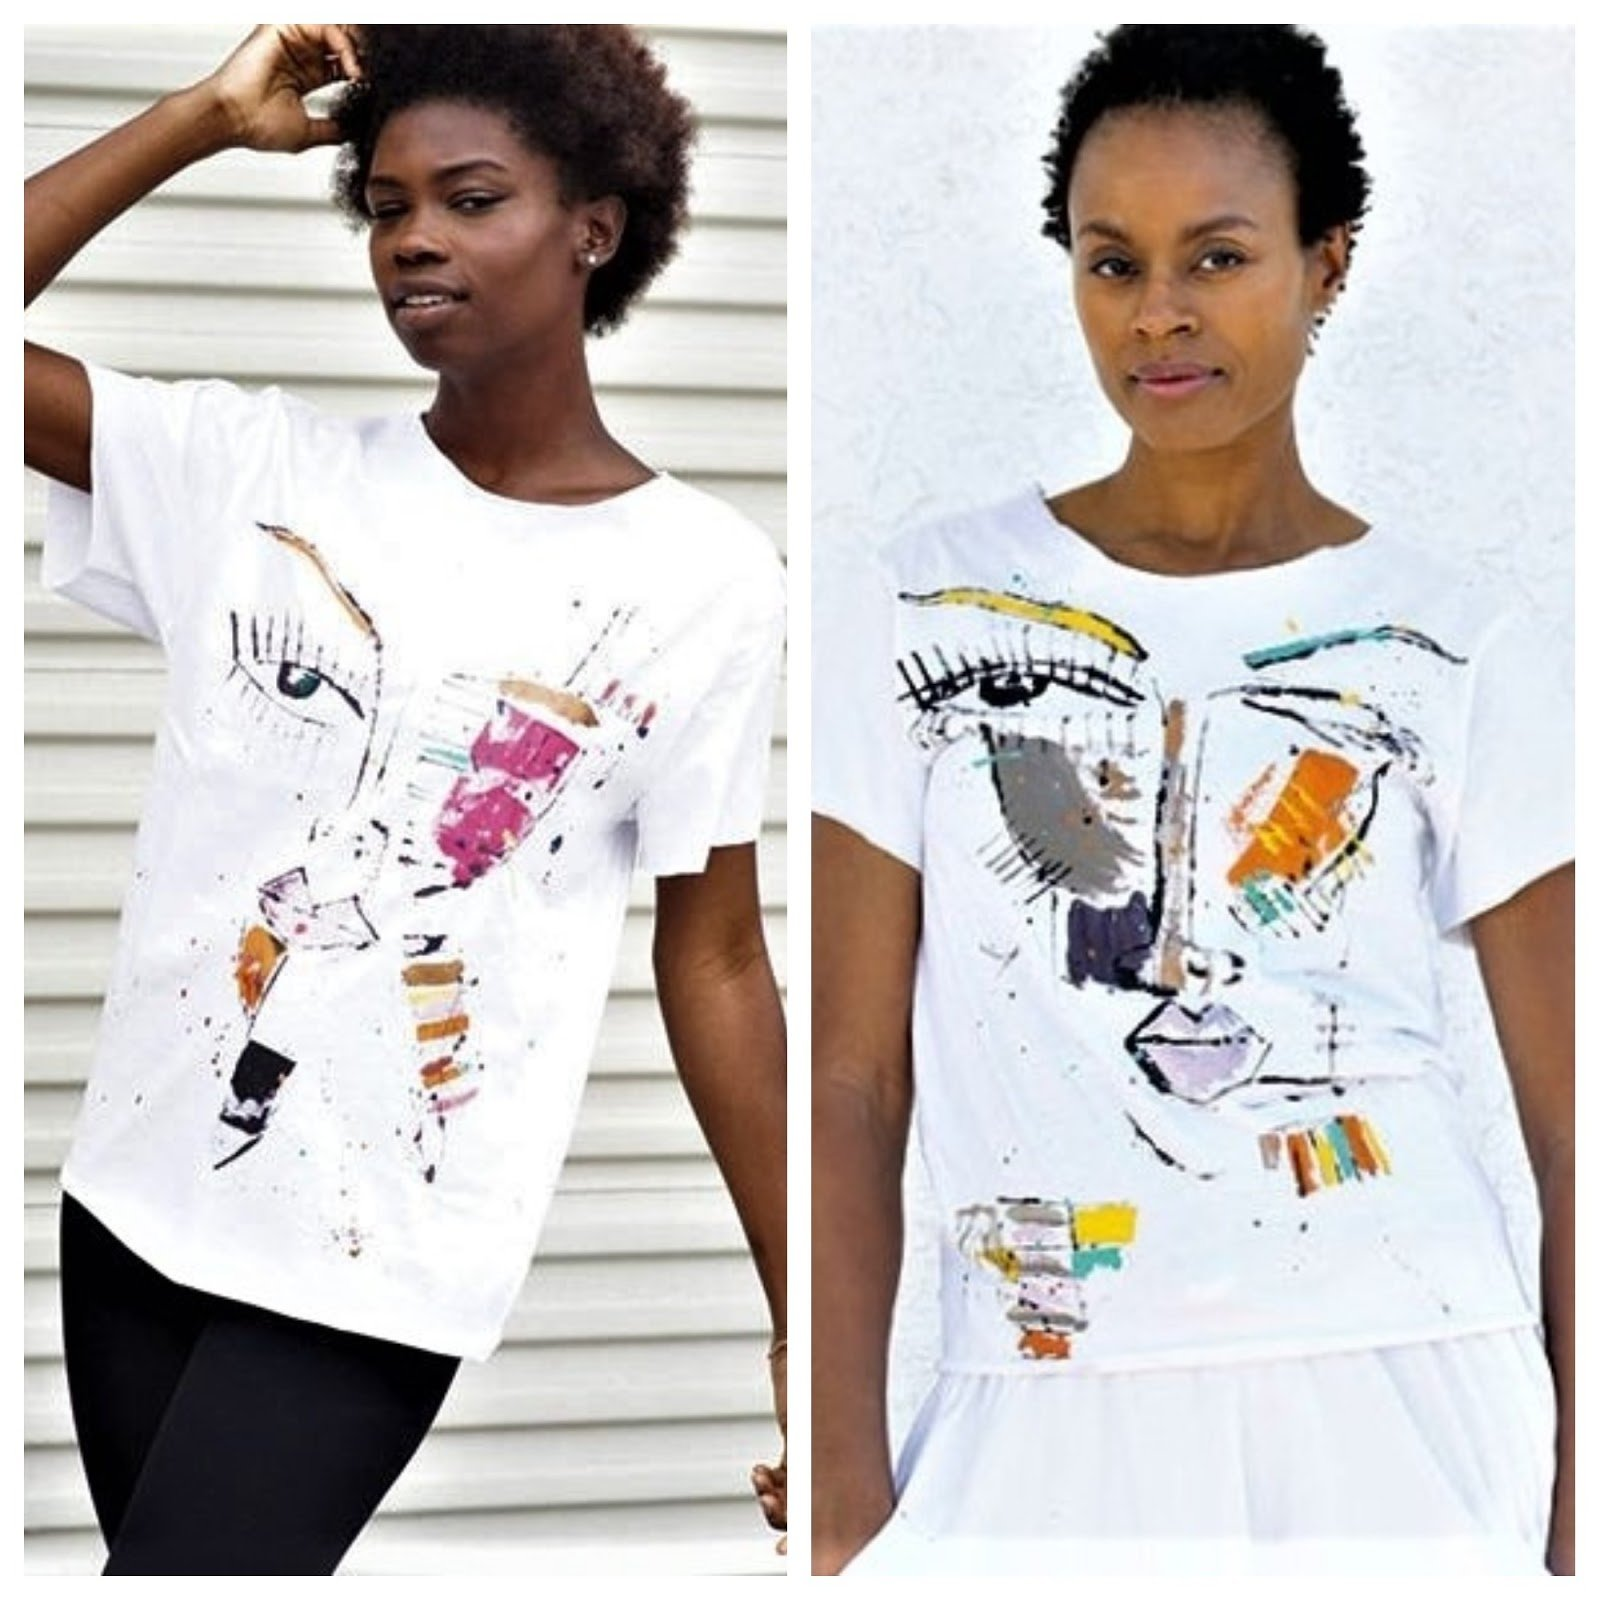 And the Winners of the Miles Regis Collection Painted T-Shirt Giveaway Are...